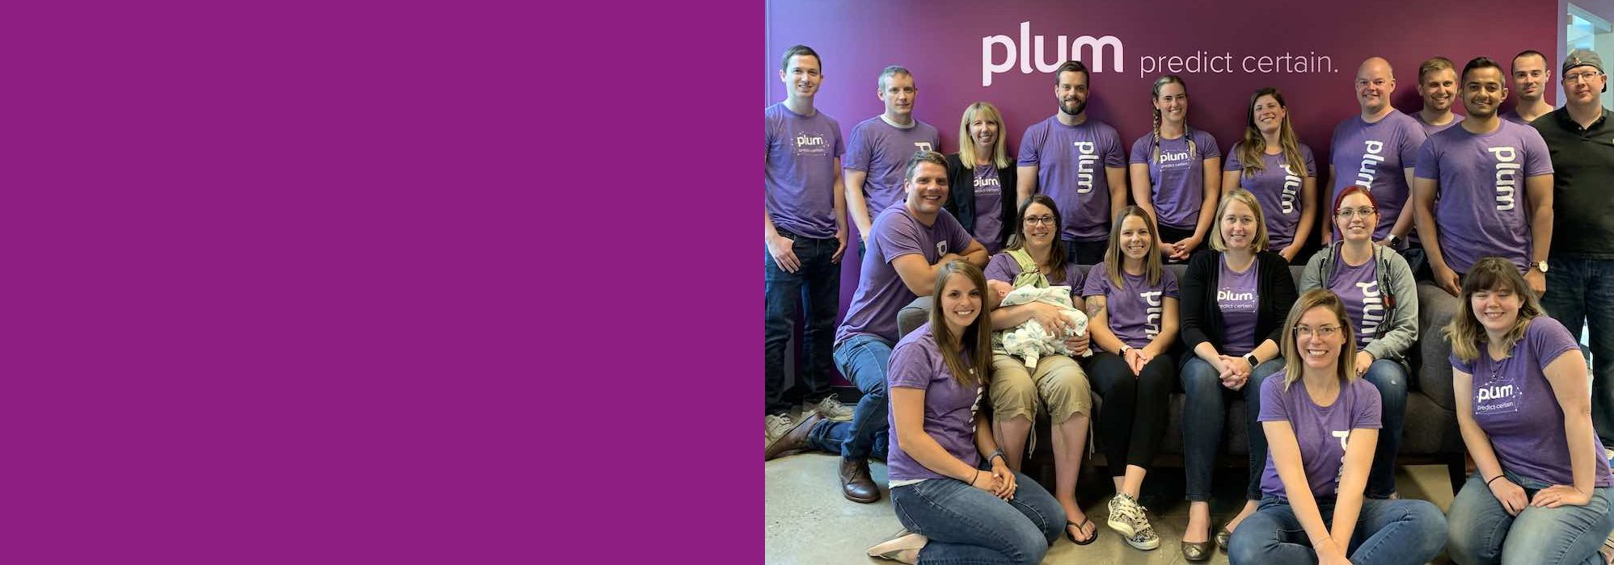 Plum raises $4.2 million USD, shifts focus beyond recruitment